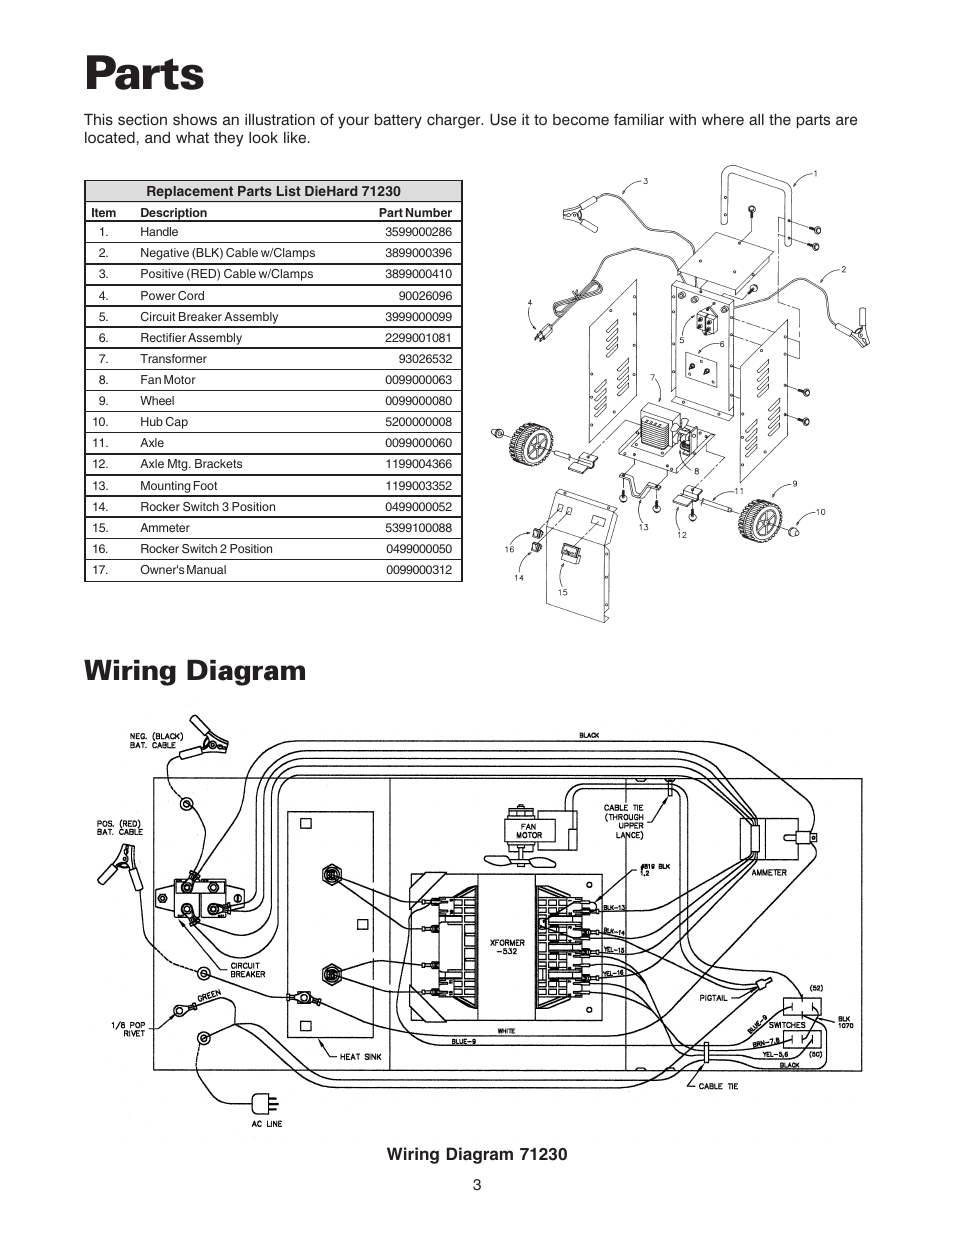 Parts     Wiring       diagram      Sears 20071231    User    Manual   Page